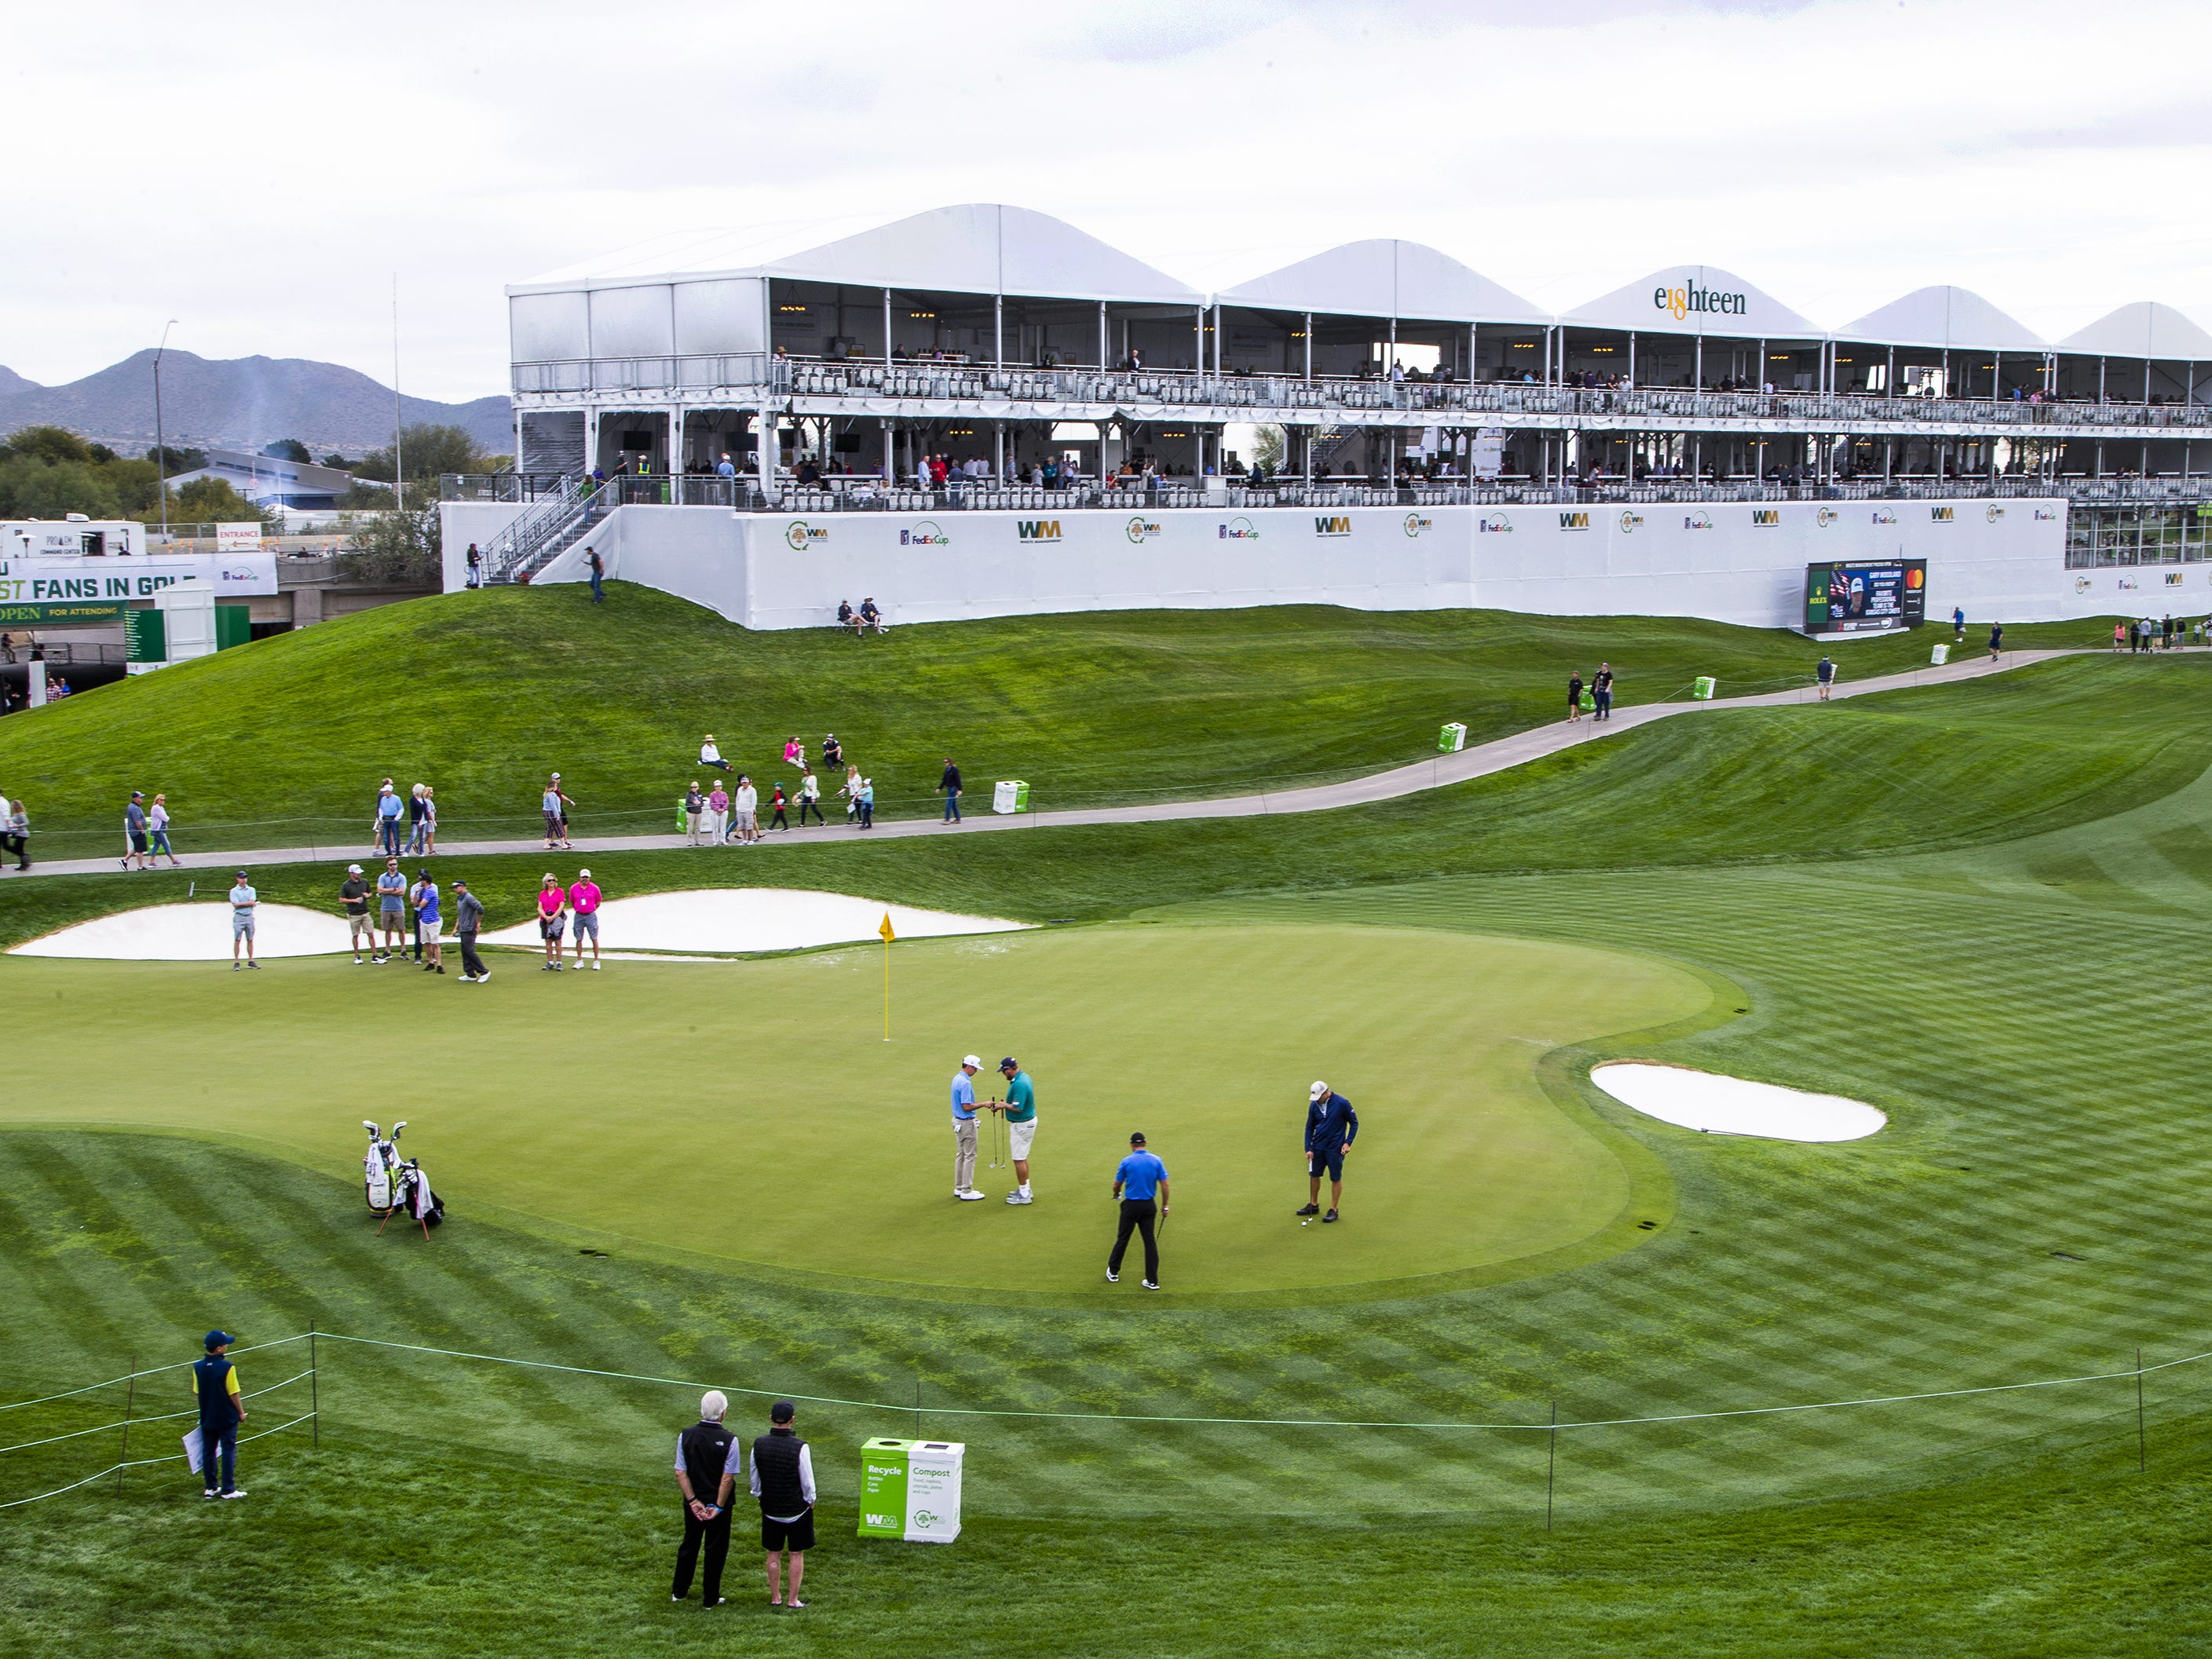 A third level has been added to the grandstand on the 18th hole at the Waste Management Phoenix Open at the TPC Scottsdale, Tuesday, January 29, 2019.